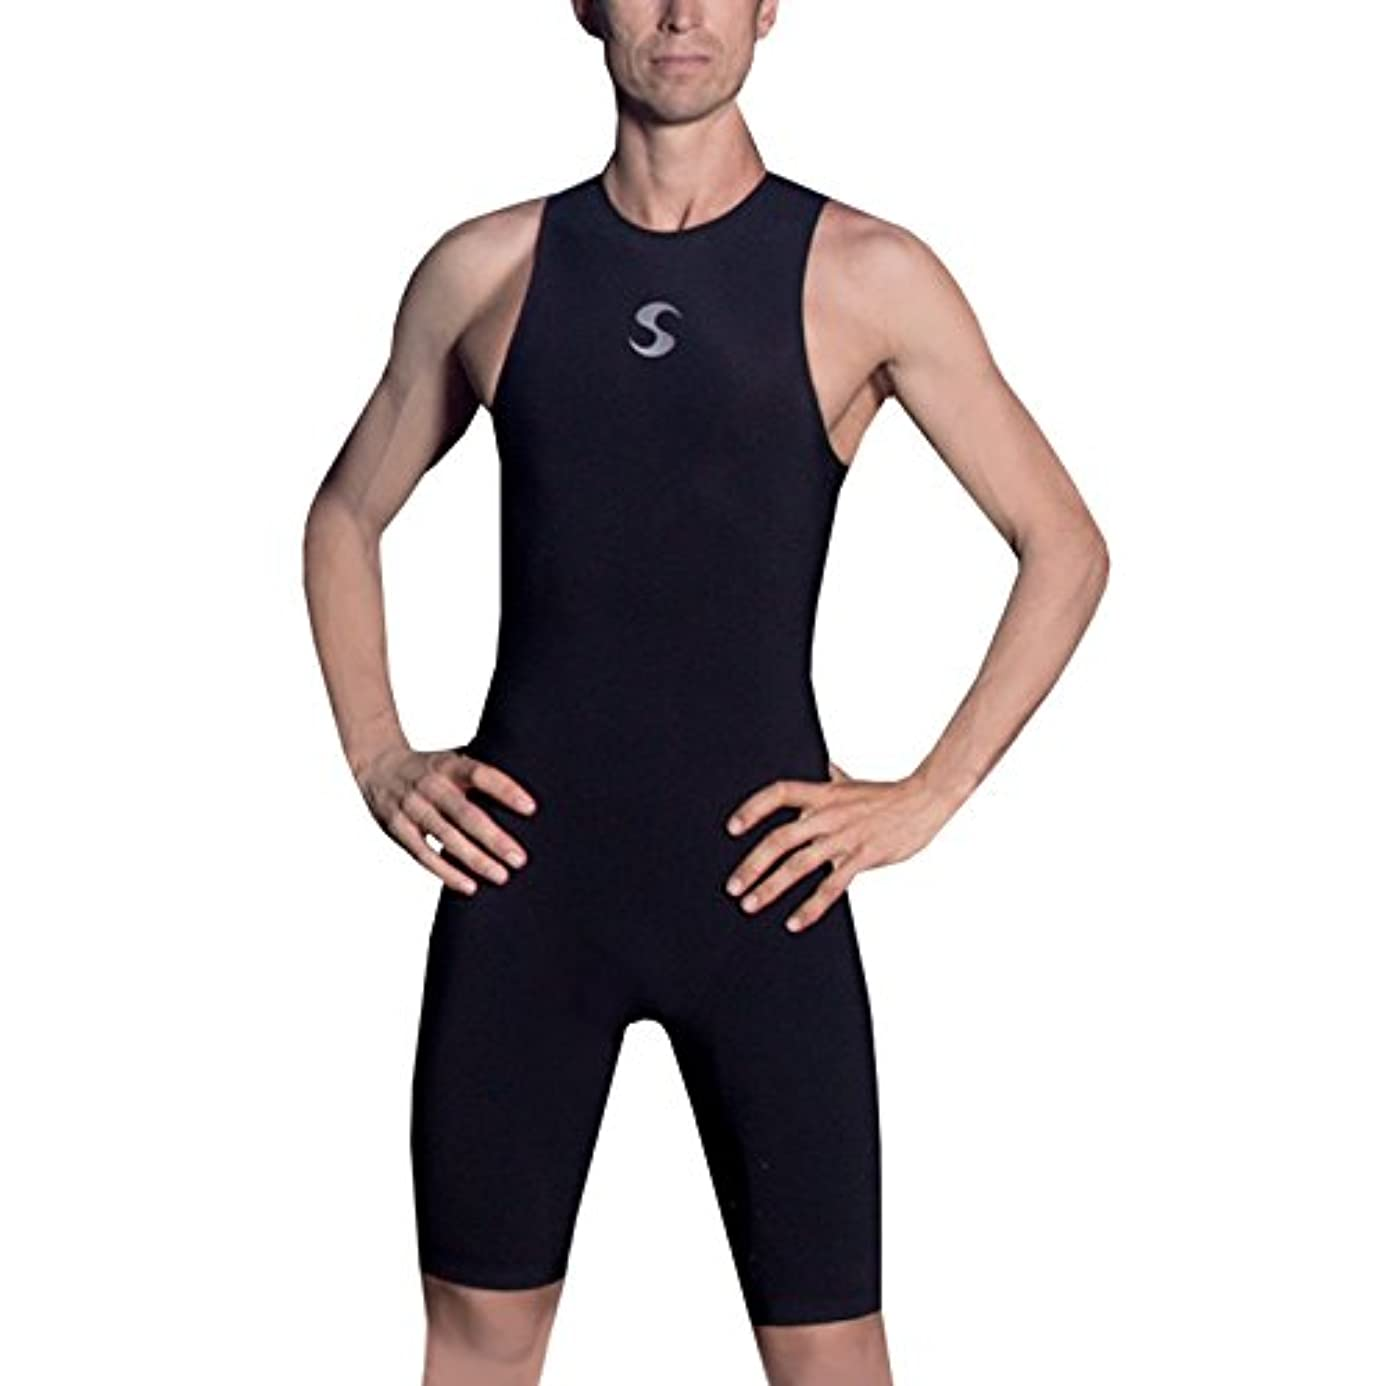 Synergy Triathlon Swimskin - Men's SynSkin Skinsuit Ironman USAT & FINA Approved?